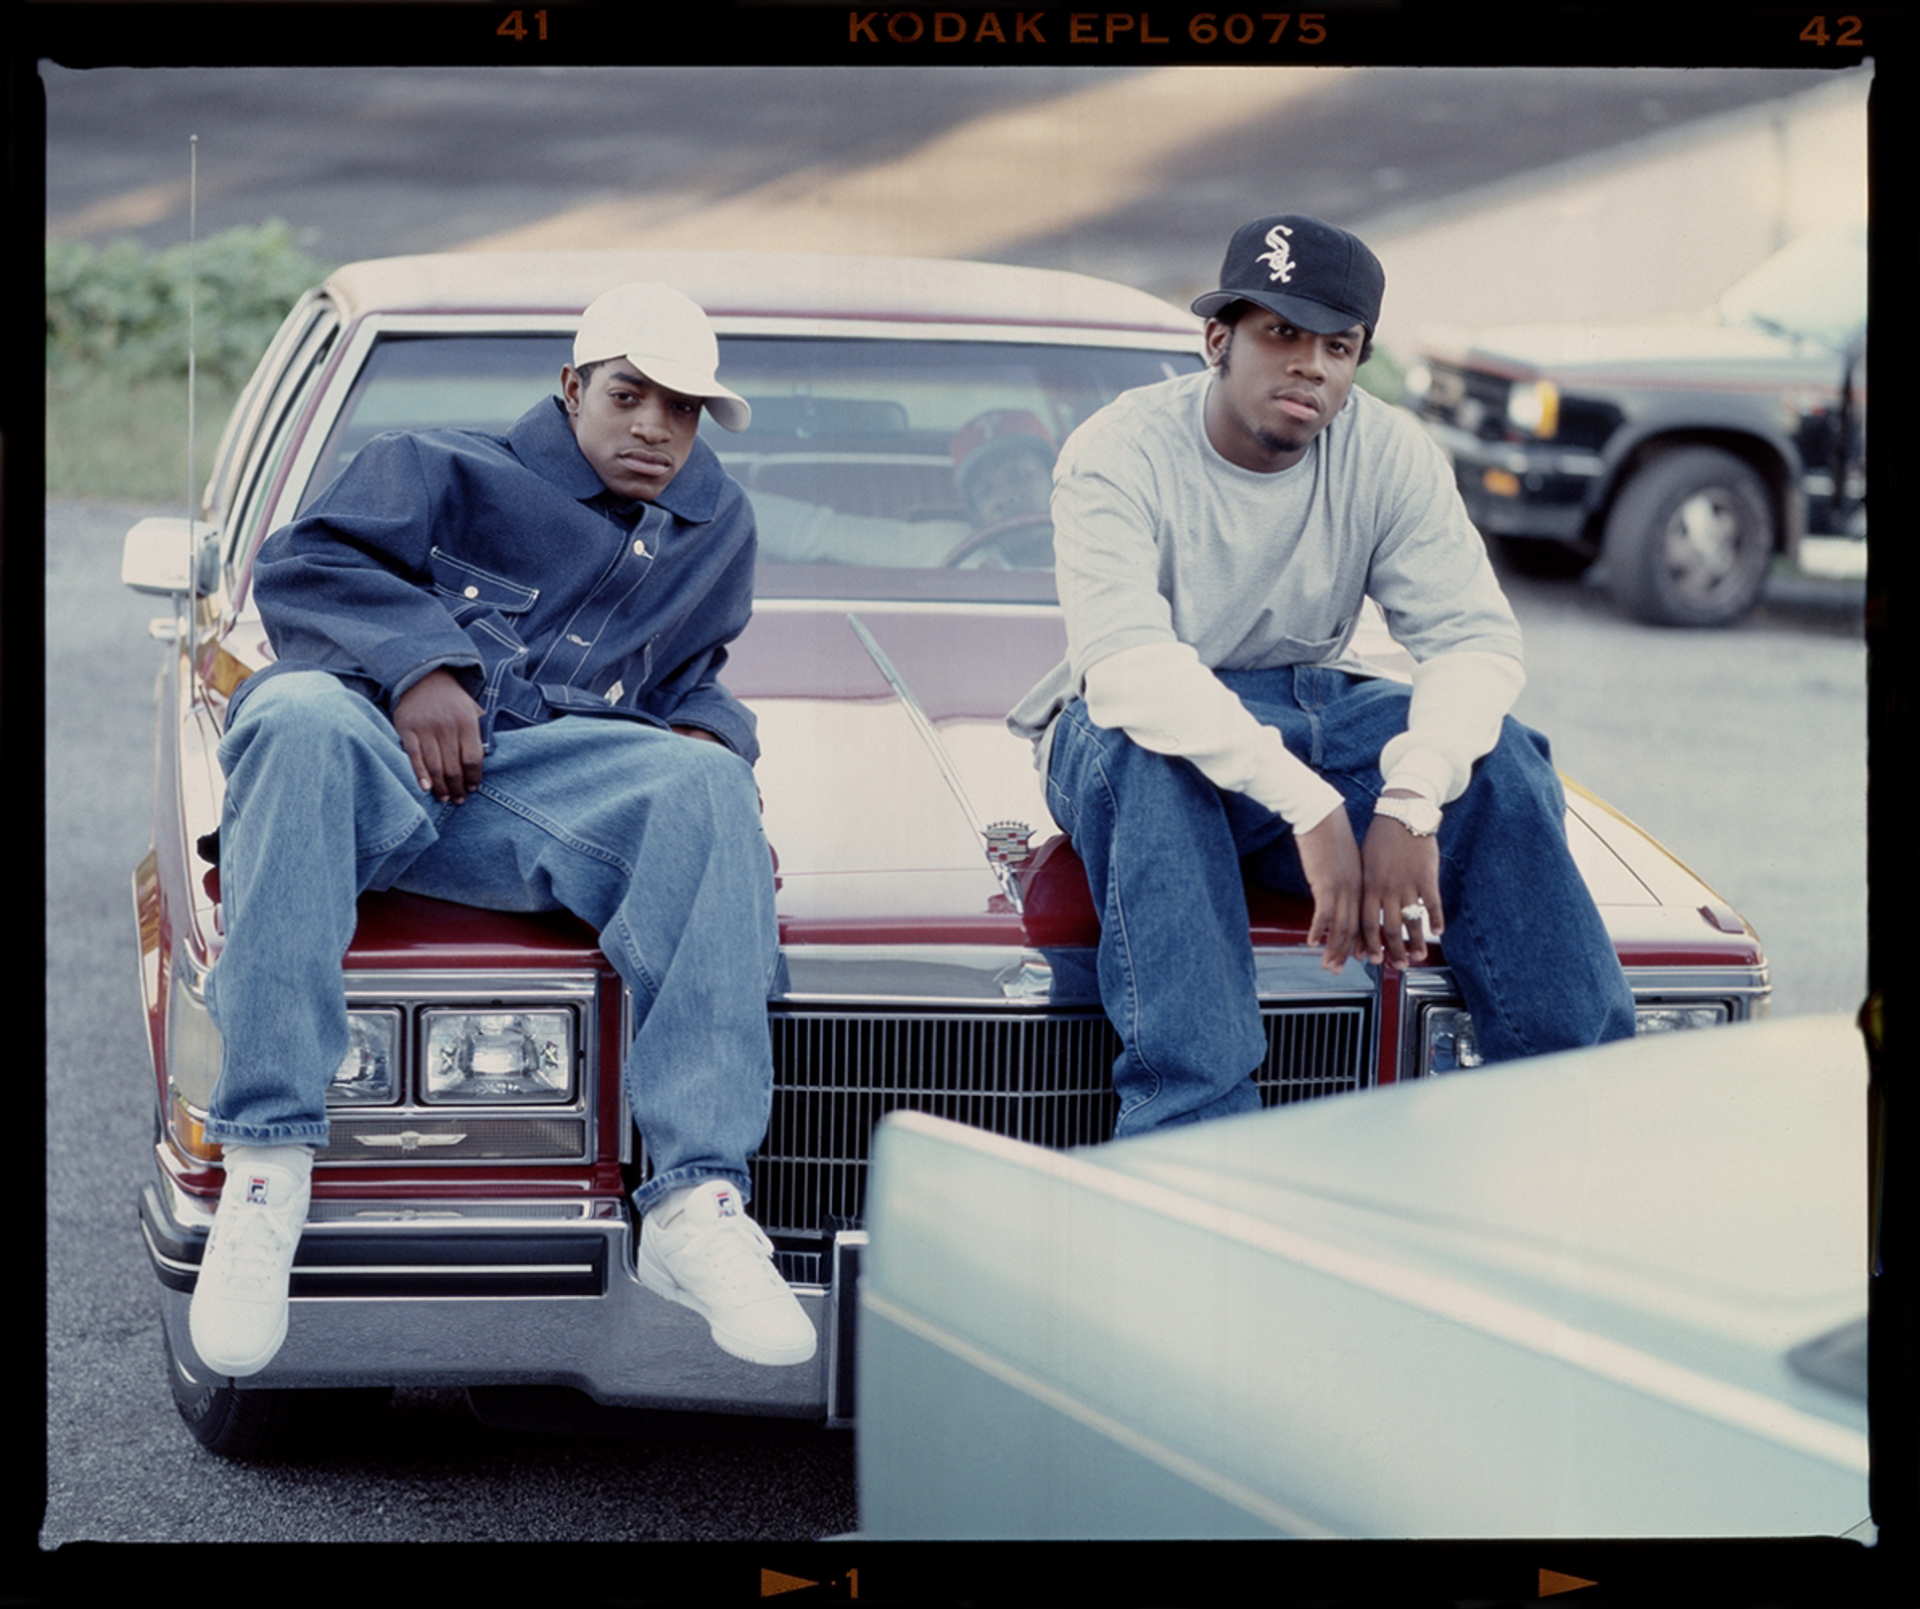 93125 Outkast On the Cadillac F16 color by Timothy White